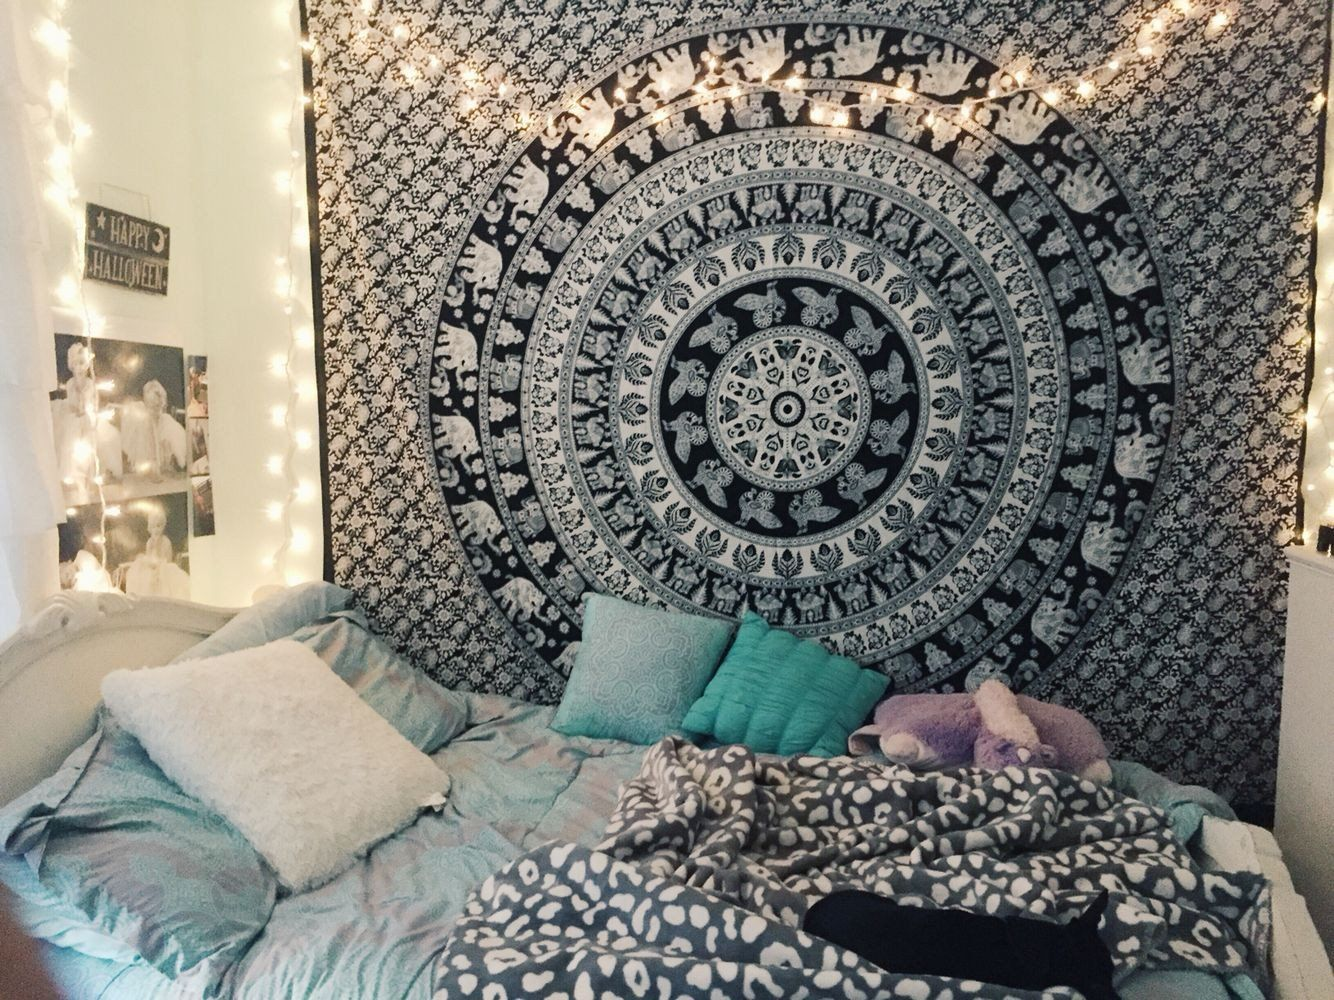 Room Decoration Ideas Pinterest Unique Tumblr Bedroom Inspiration Lights Tapestry Pillows In 2020 Dorm Room Walls Dorm Room Decor Tapestry Bedroom